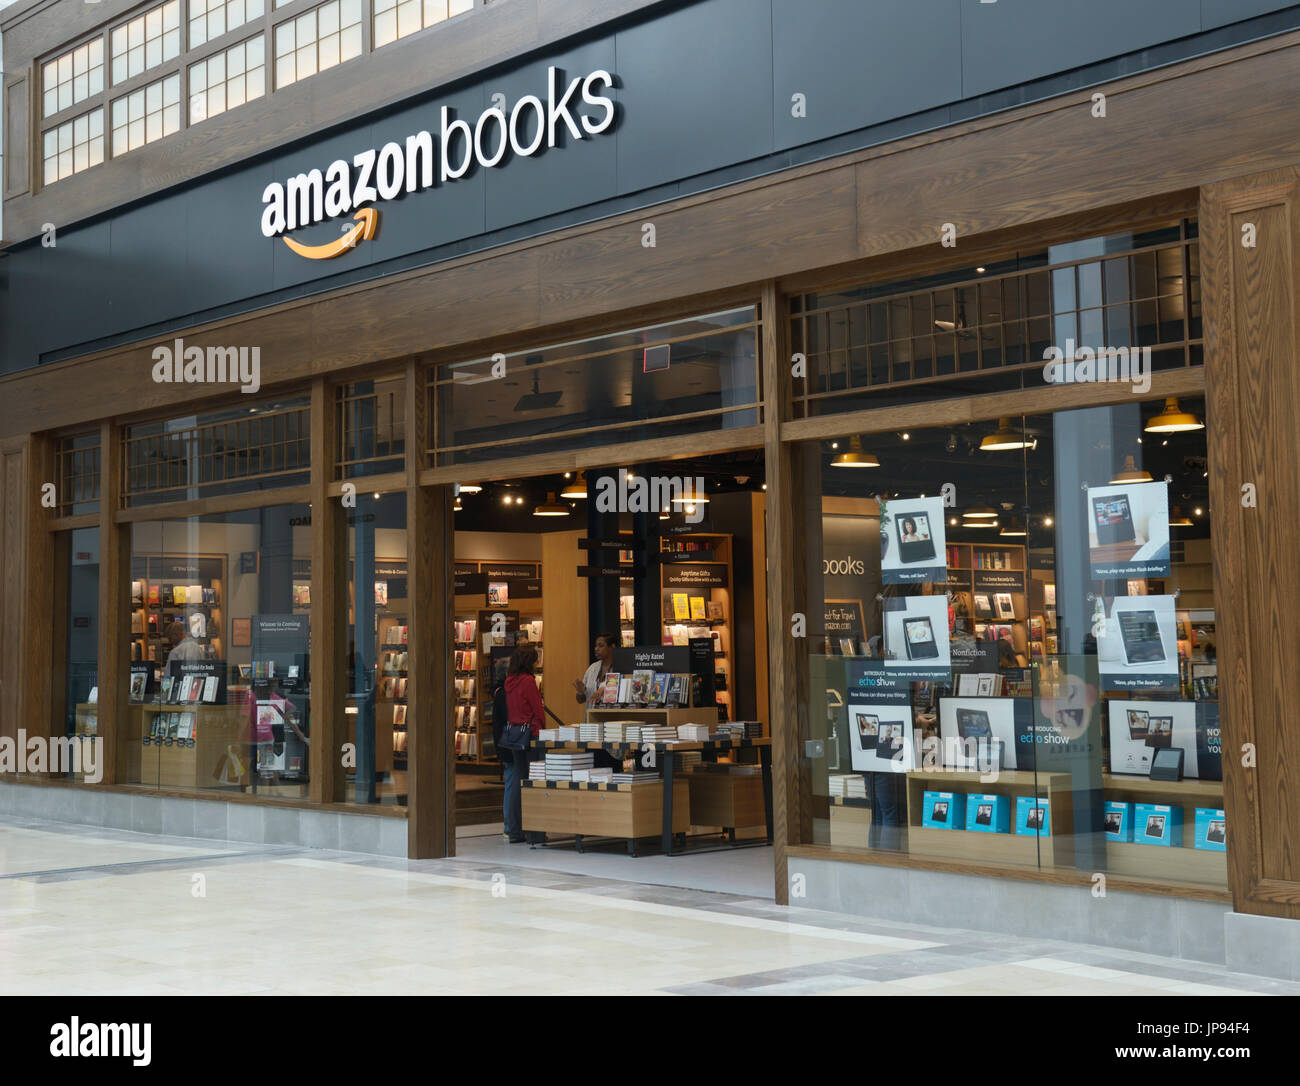 Amazonbooks retail store exterior in a mall, northern NJ - Stock Image